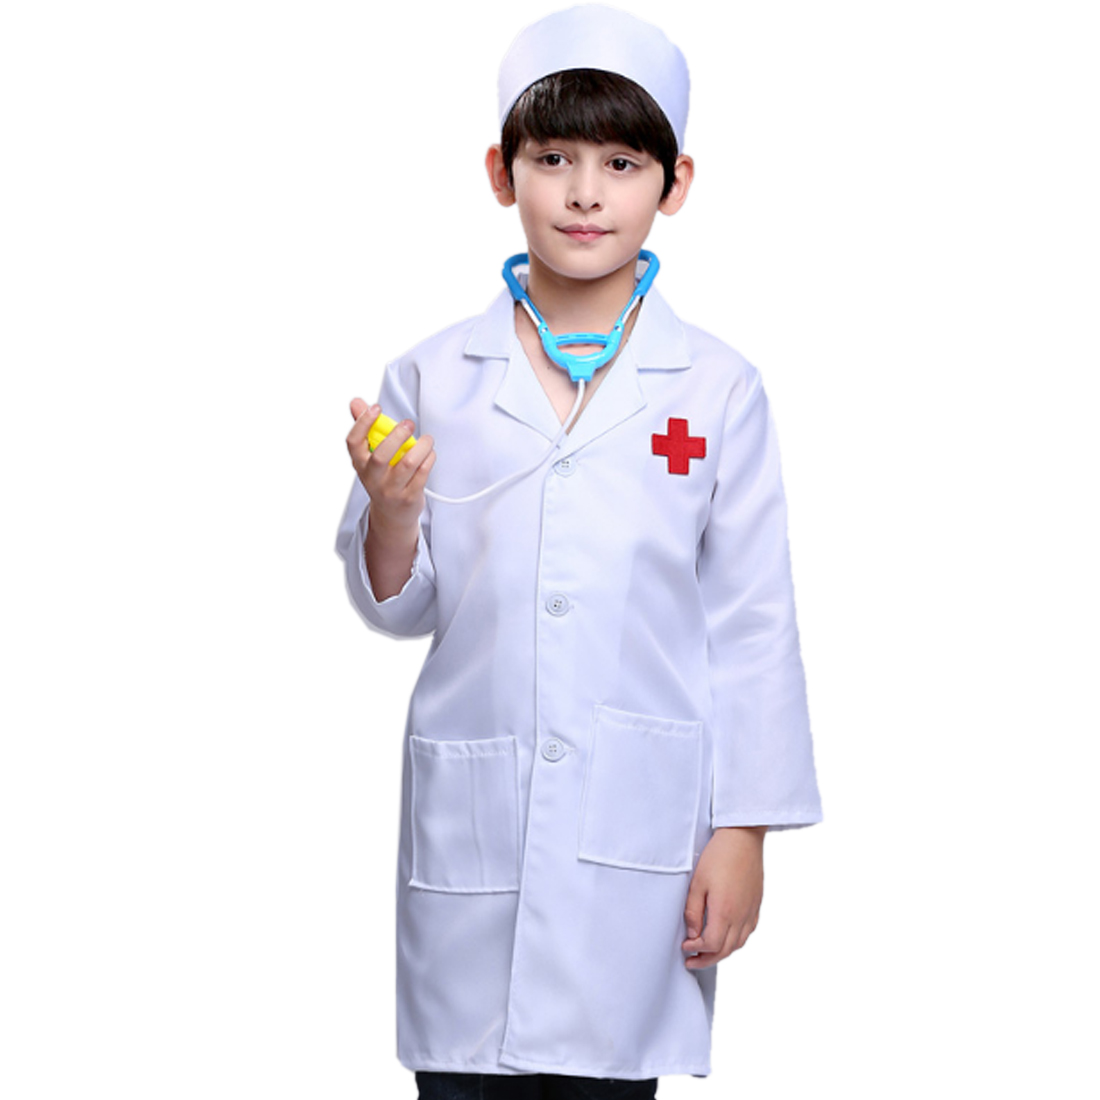 1pcs Pretend Play Little Nurse Doctor Professional Role Playing Costume For 90cm 110cm 130cm Children Boys- Doctor Sleeve + Cap